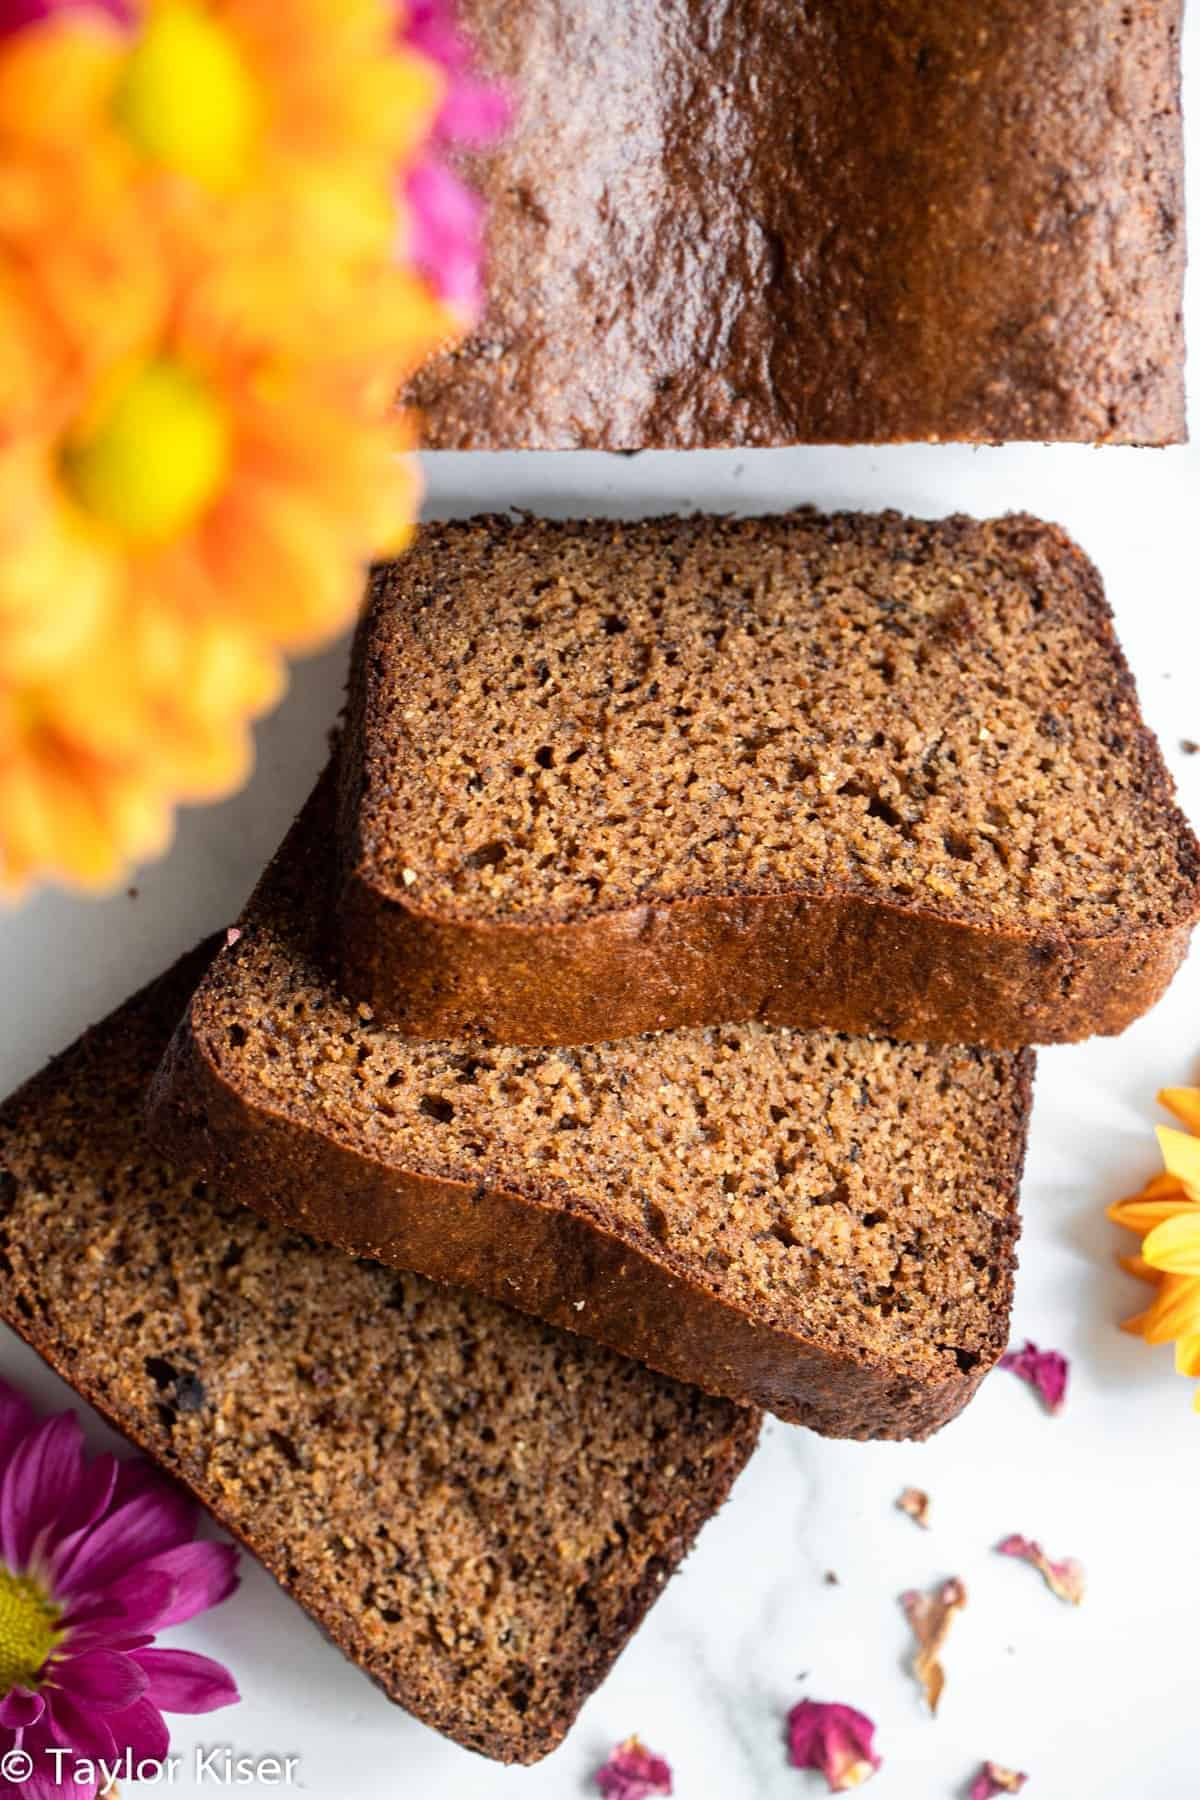 Slices of protein banana bread with flowers on a table